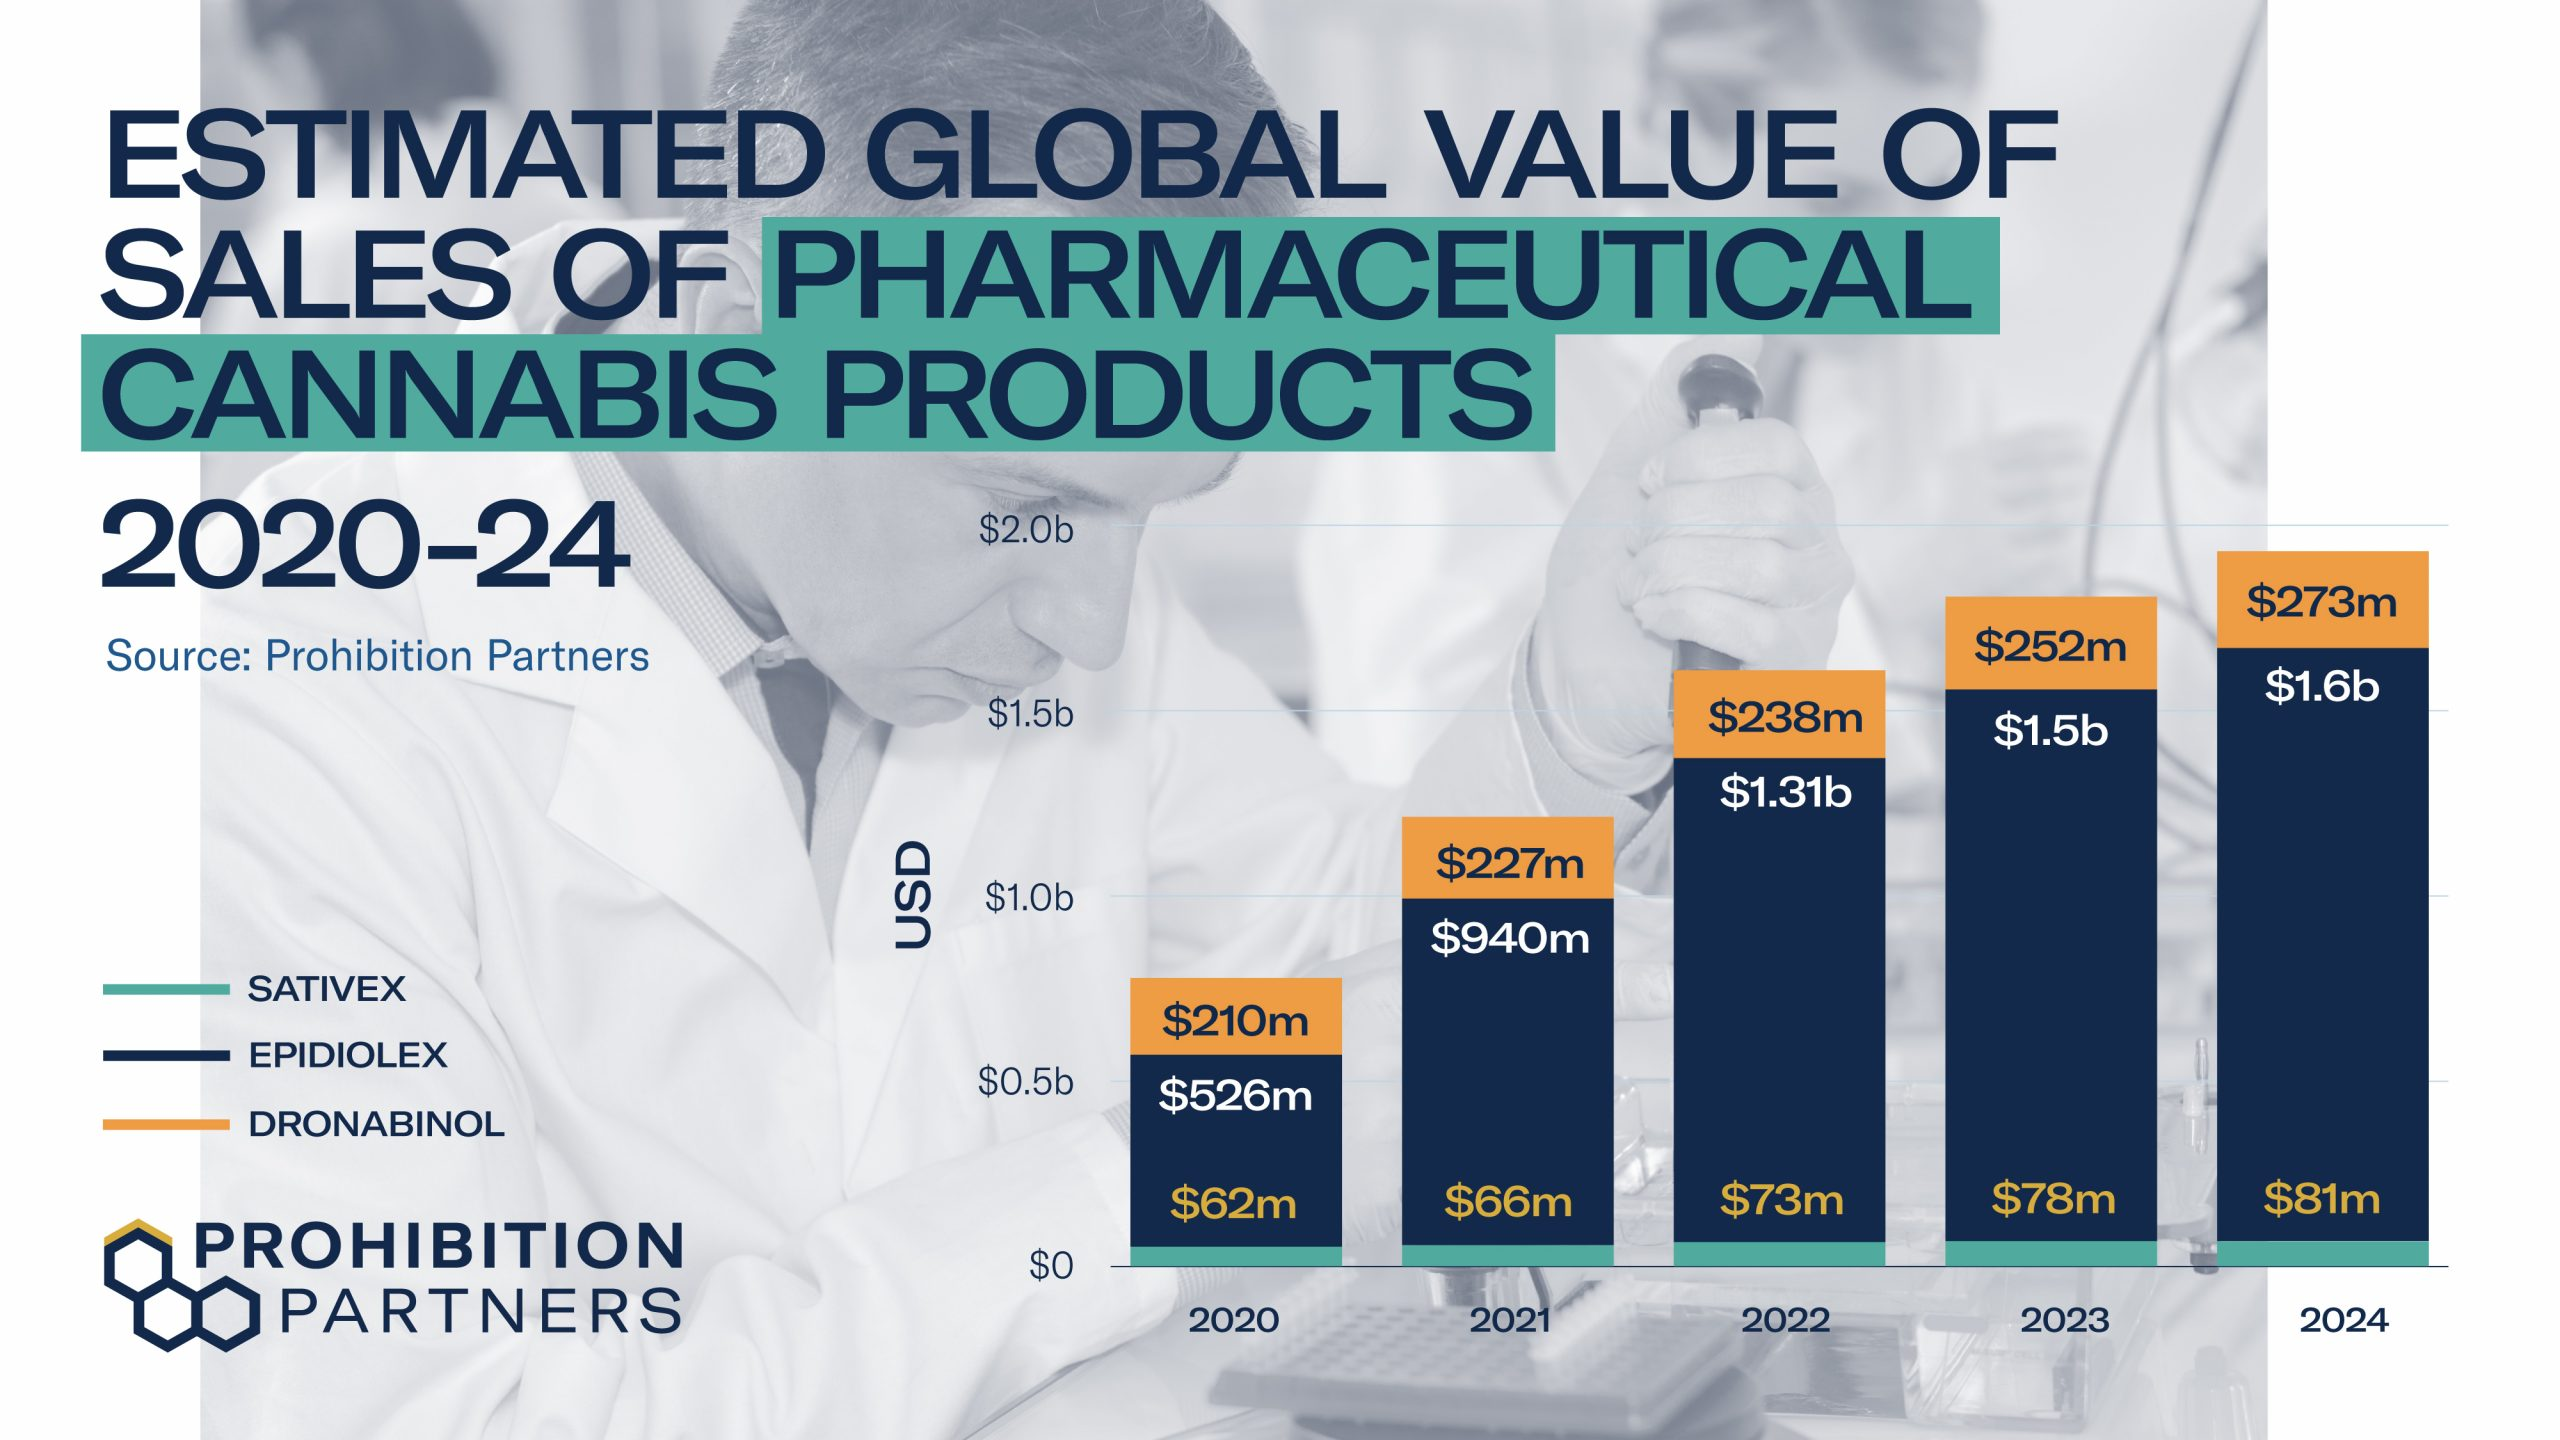 Estimated global value of sales of pharmaceutical cannabis products 2020 - 2024 - The Top Ten Cannabis Trends for 2021